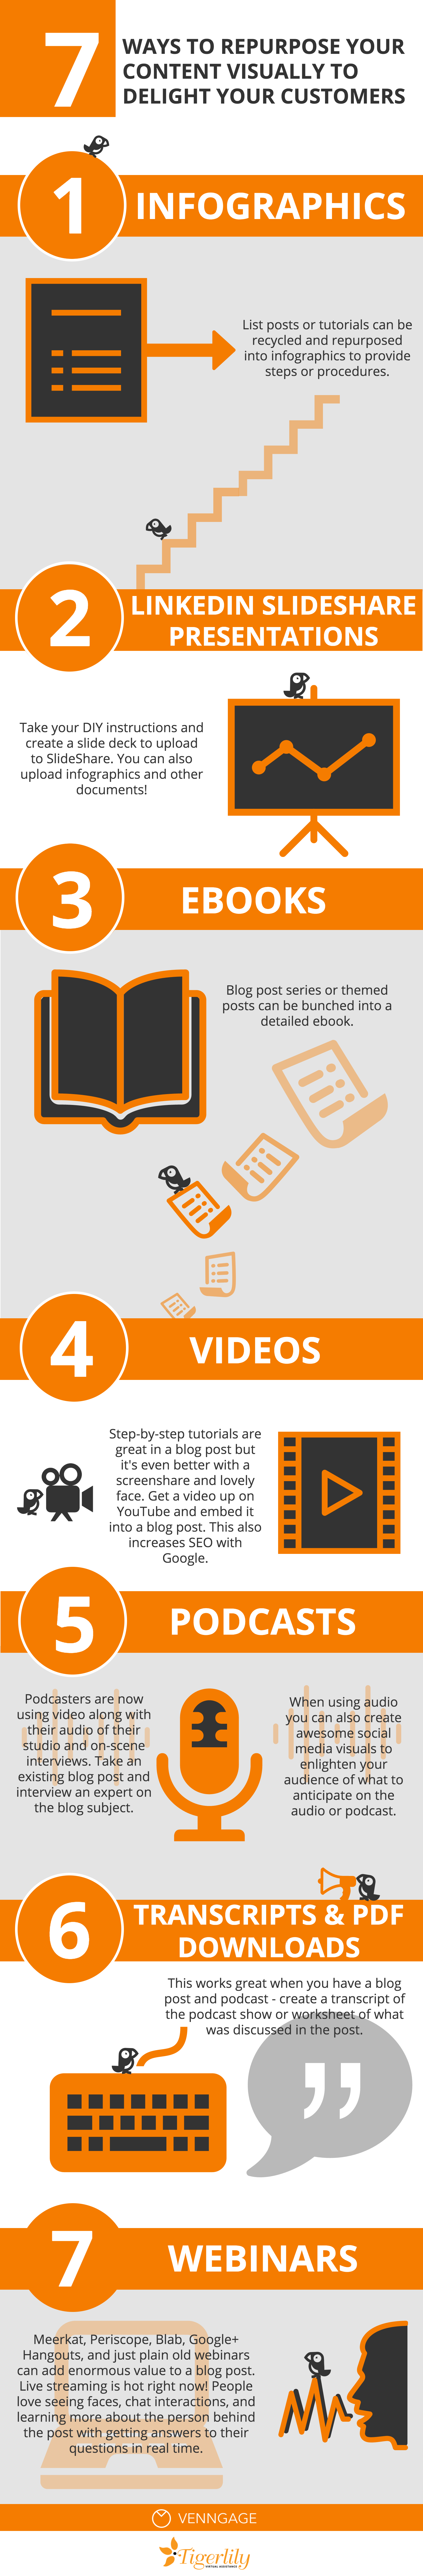 Infographic pdf download